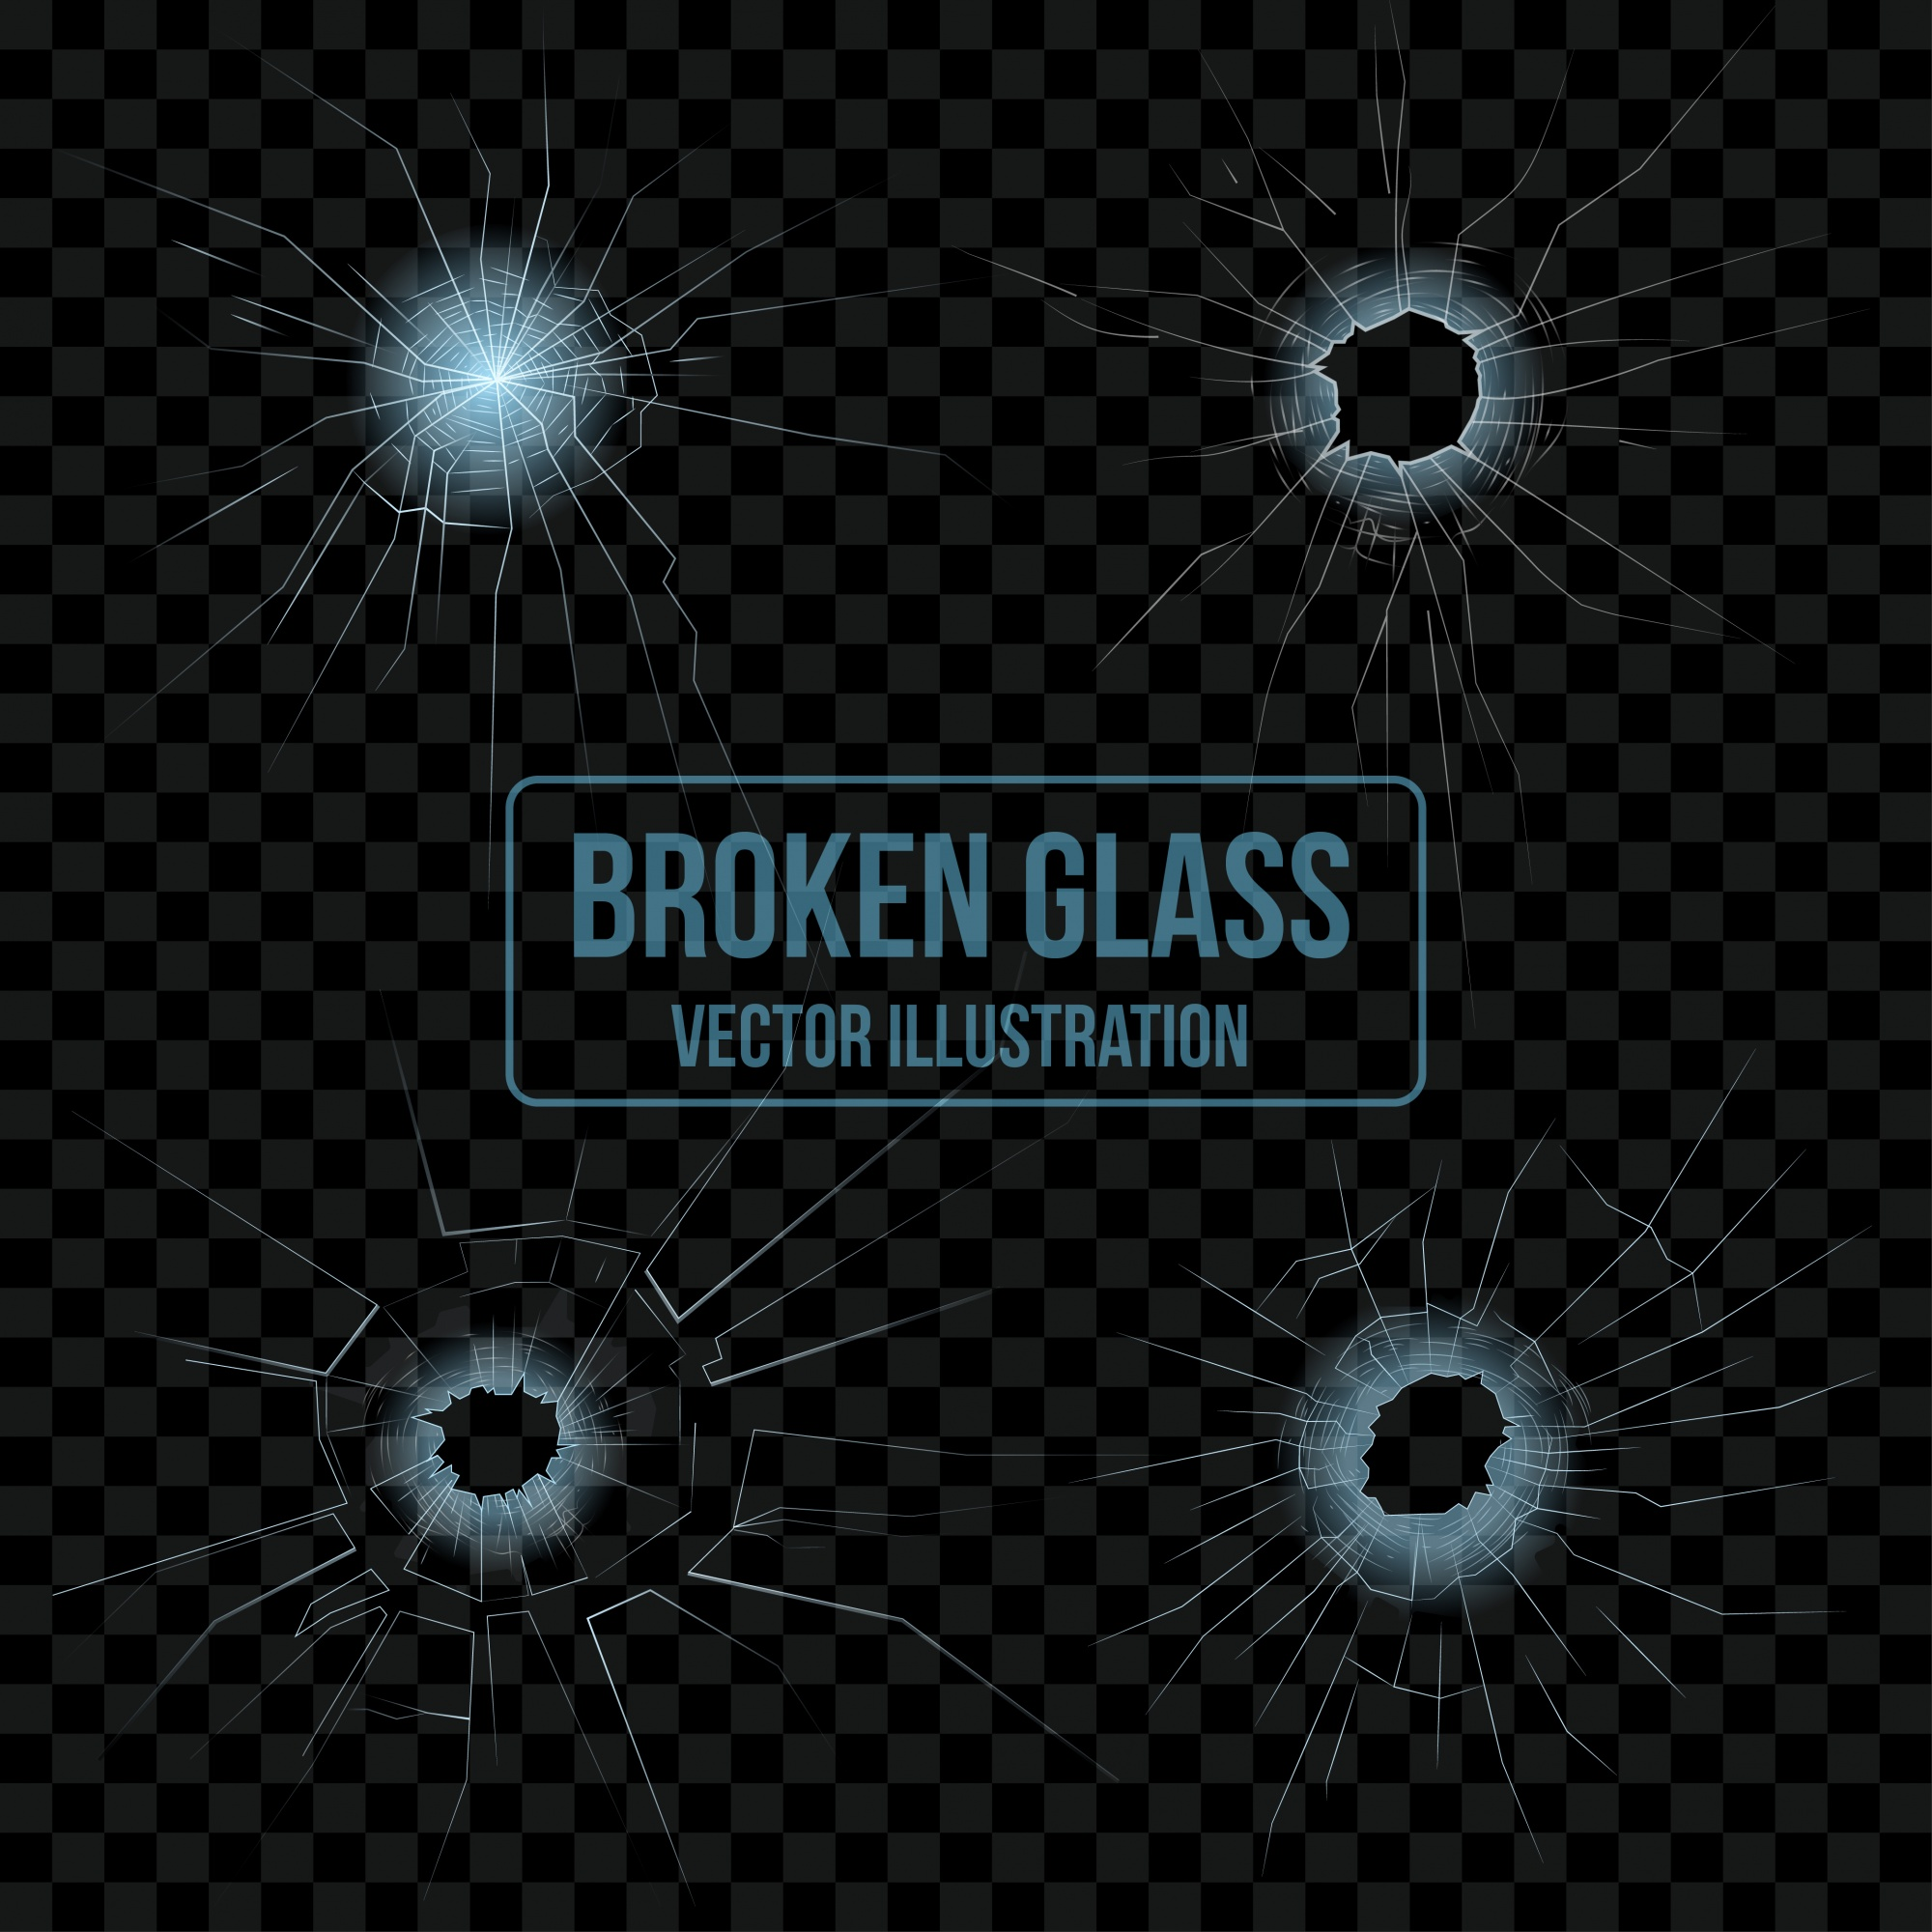 Broken glass set